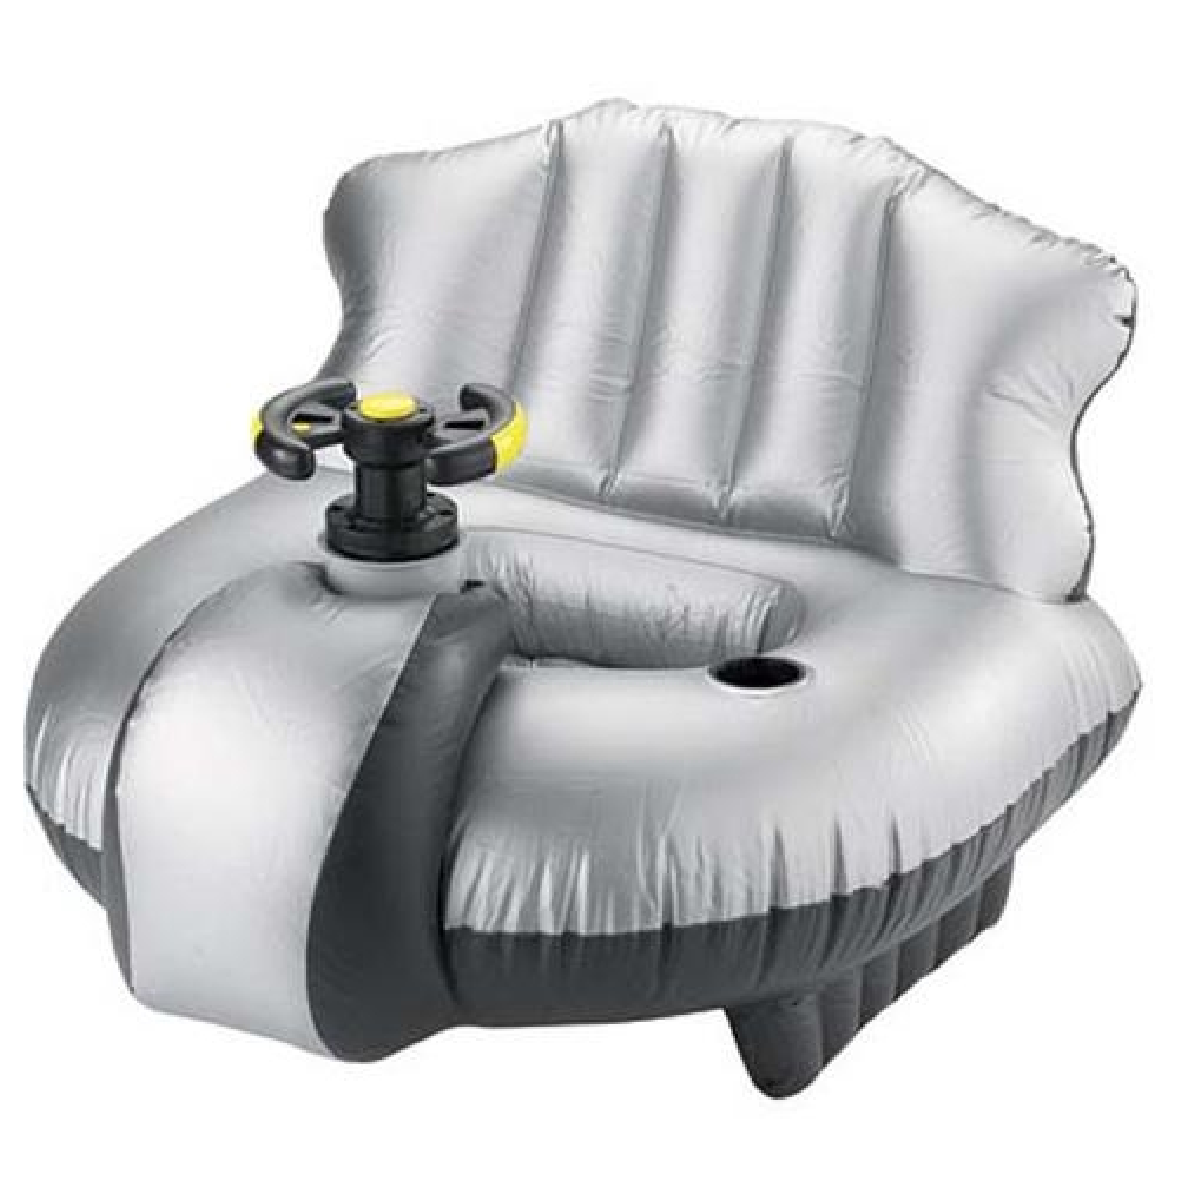 Fauteuil gonflable for Fauteuil gonflable piscine